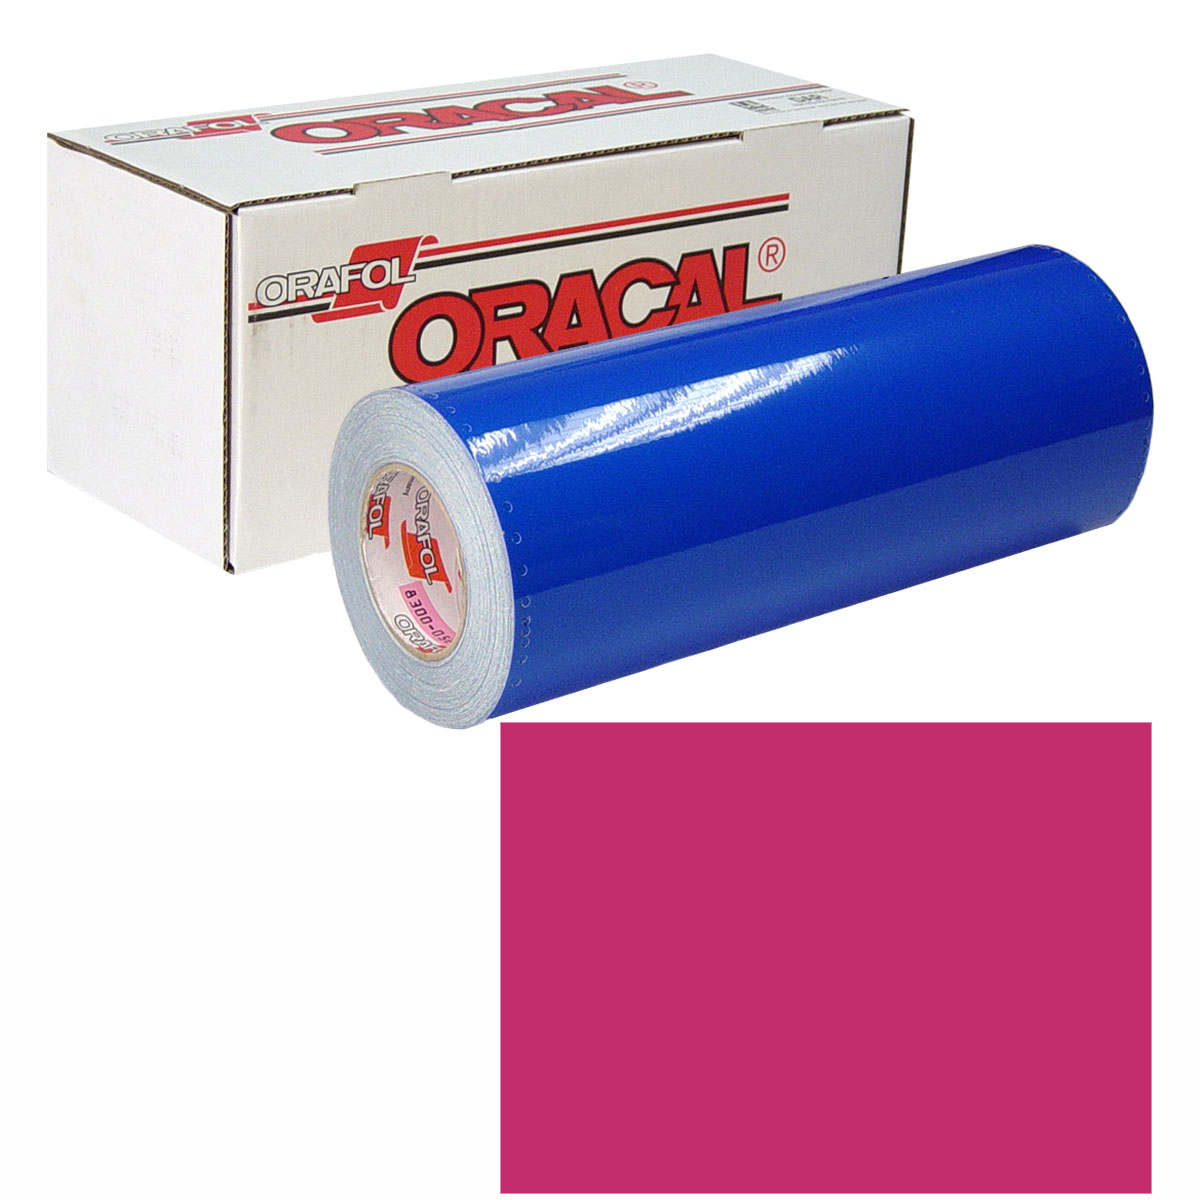 ORACAL 631 Unp 24In X 10Yd 041 Pink